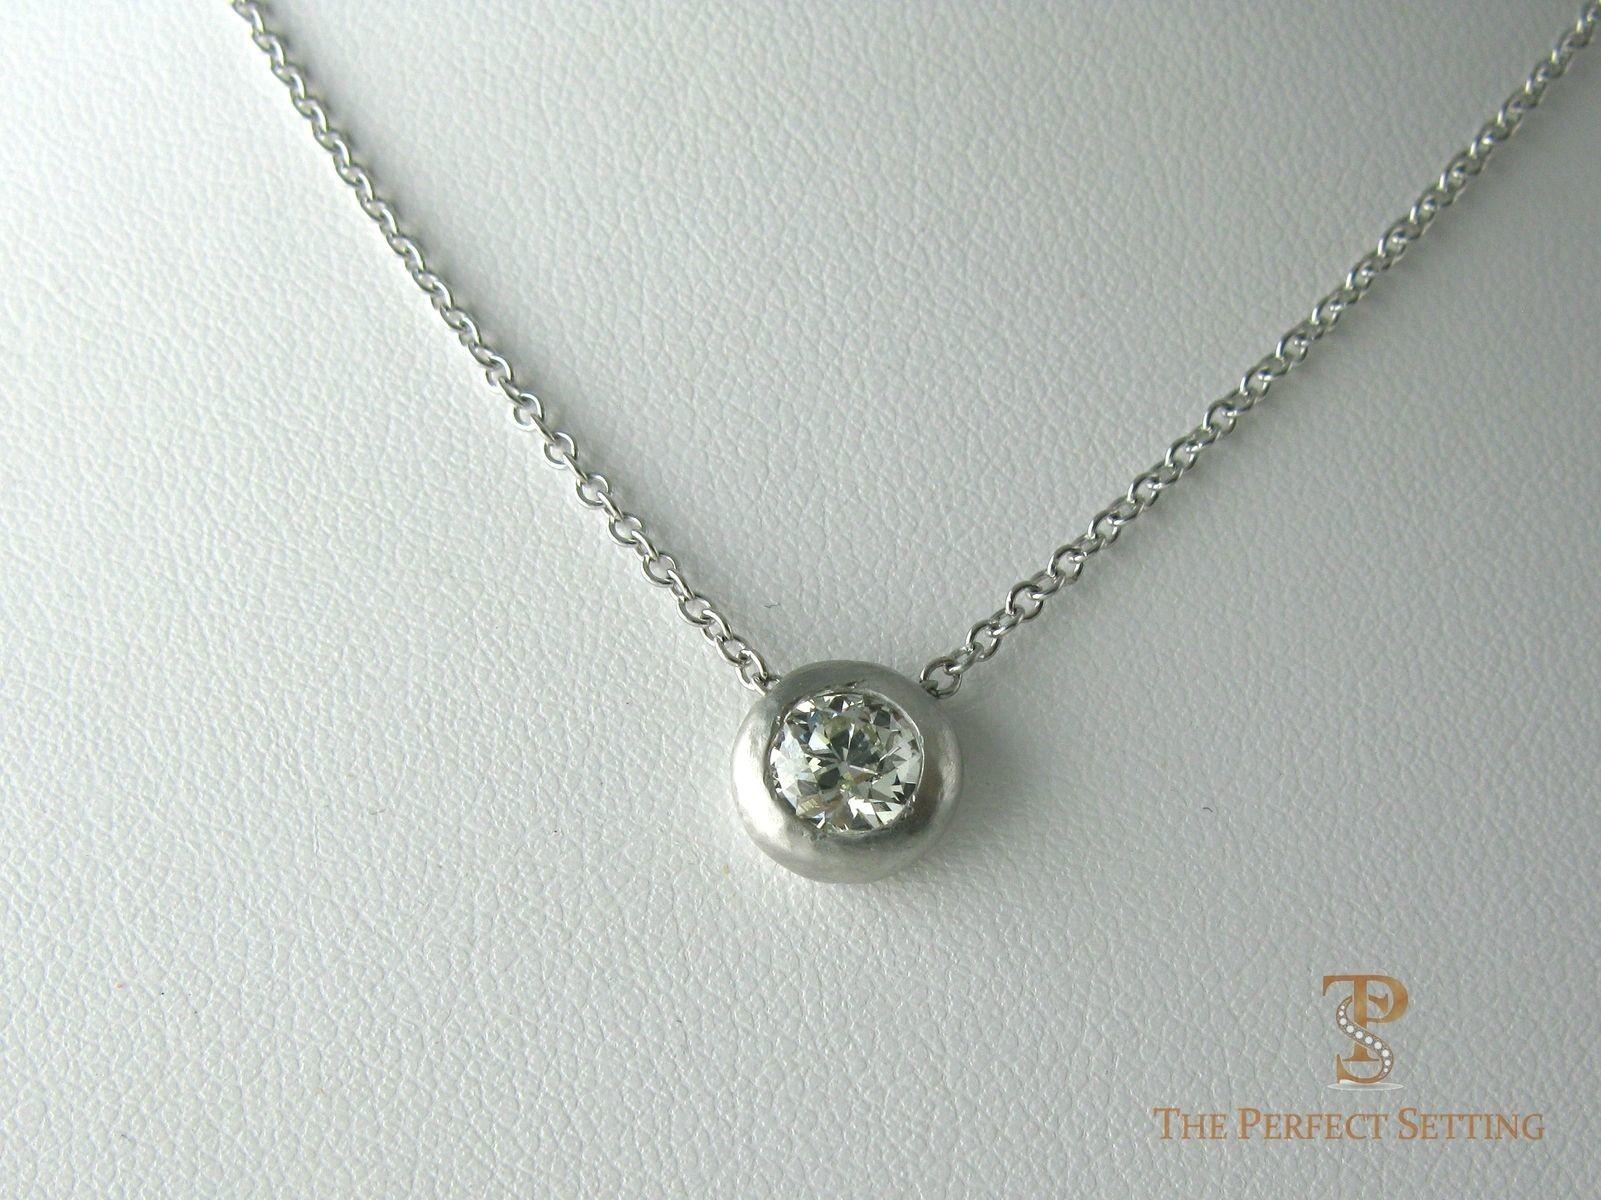 Handmade Heavy Bezel Diamond Solitaire Pendant Necklace